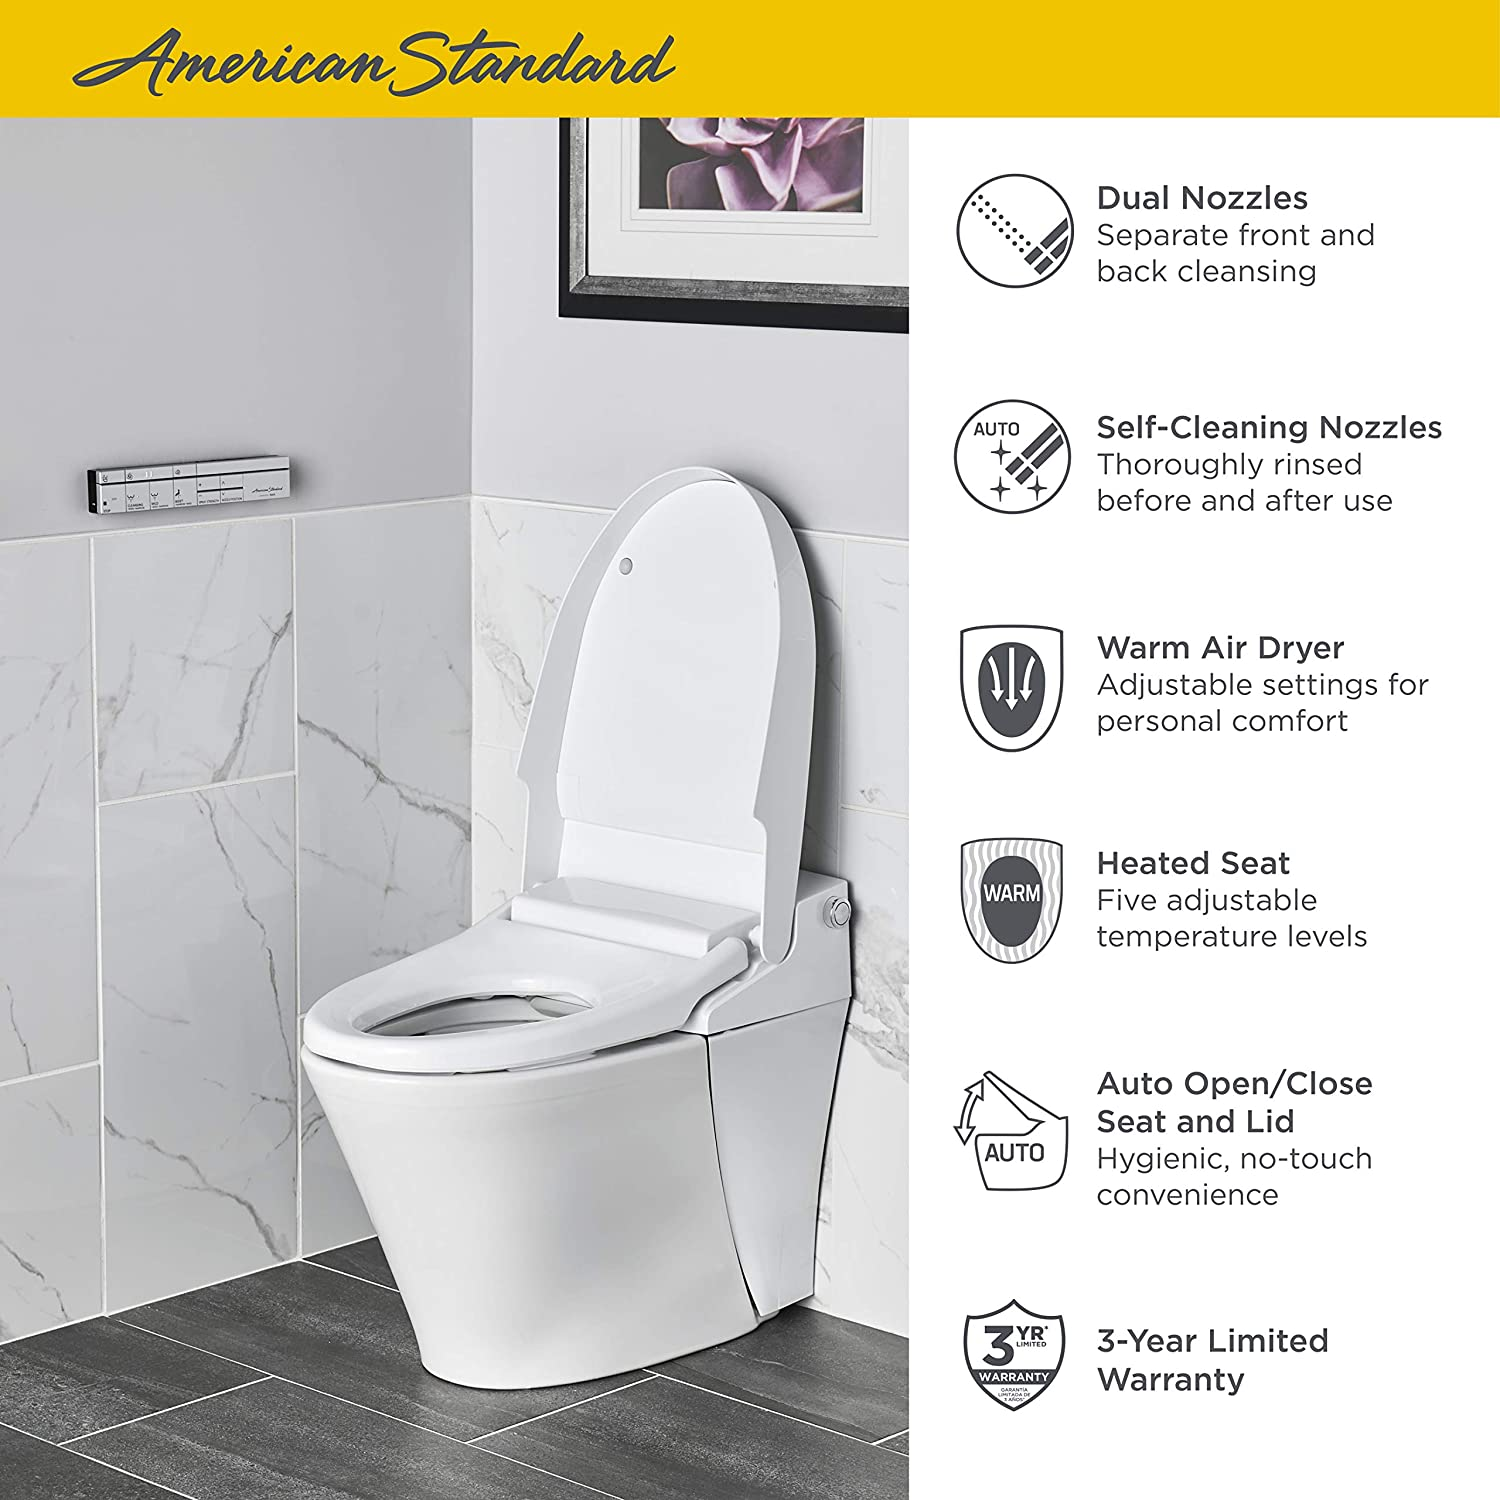 Alabaster White American Standard 297AA204-291 Advanced Clean 100 SpaLet Toilet